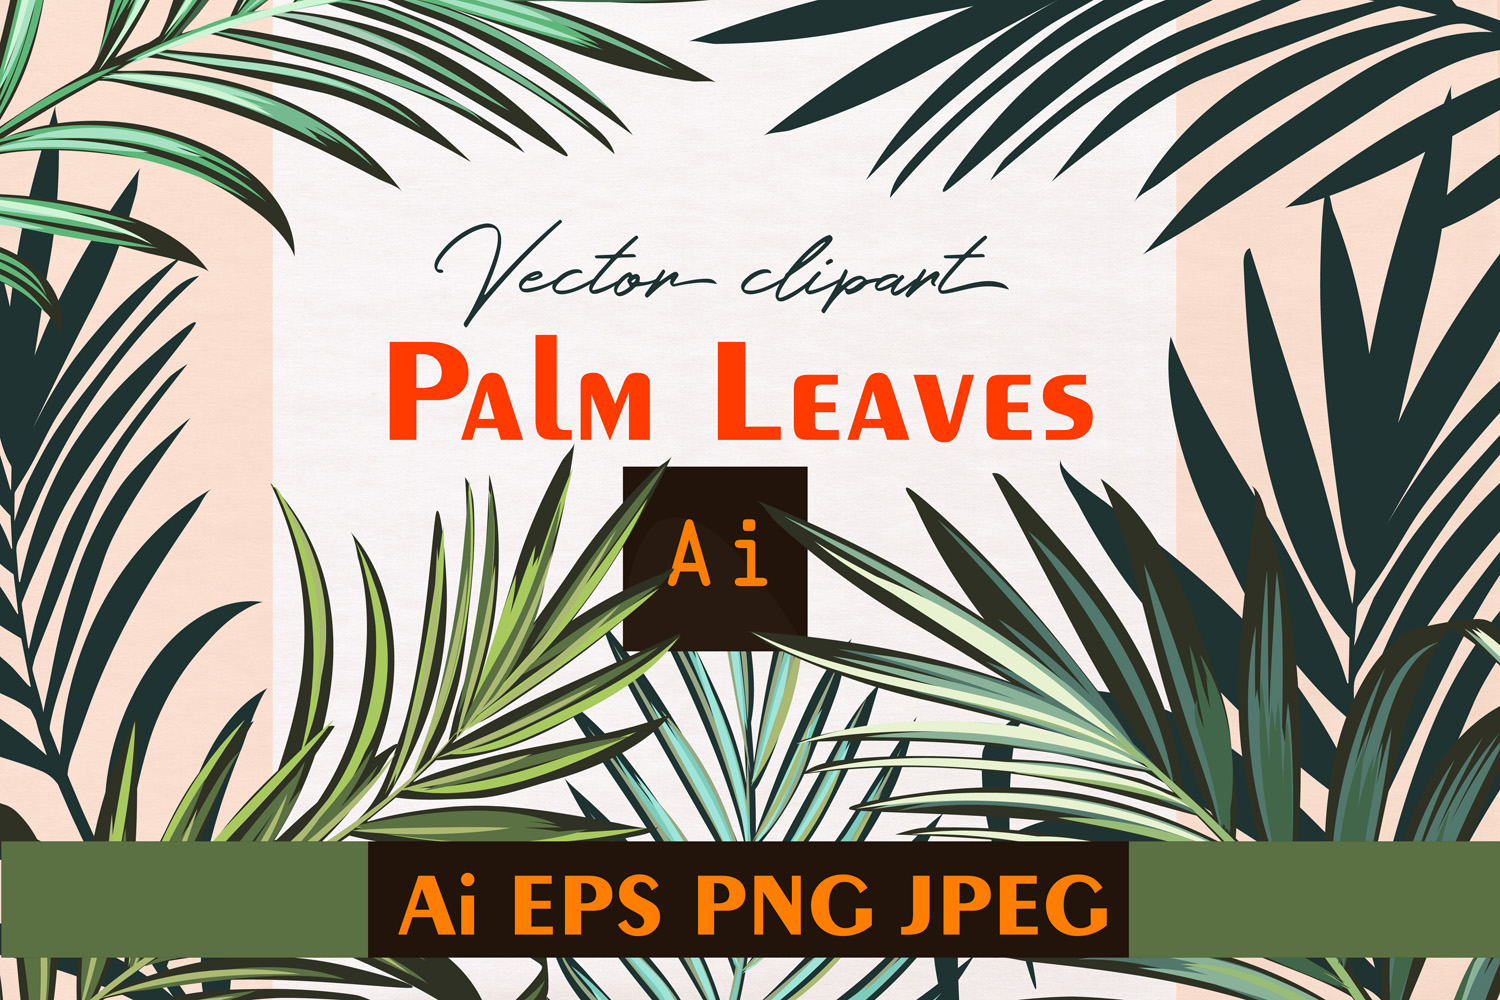 Download Free Palm Leafs Vector Clipart Set Graphic By Fleurartmariia for Cricut Explore, Silhouette and other cutting machines.